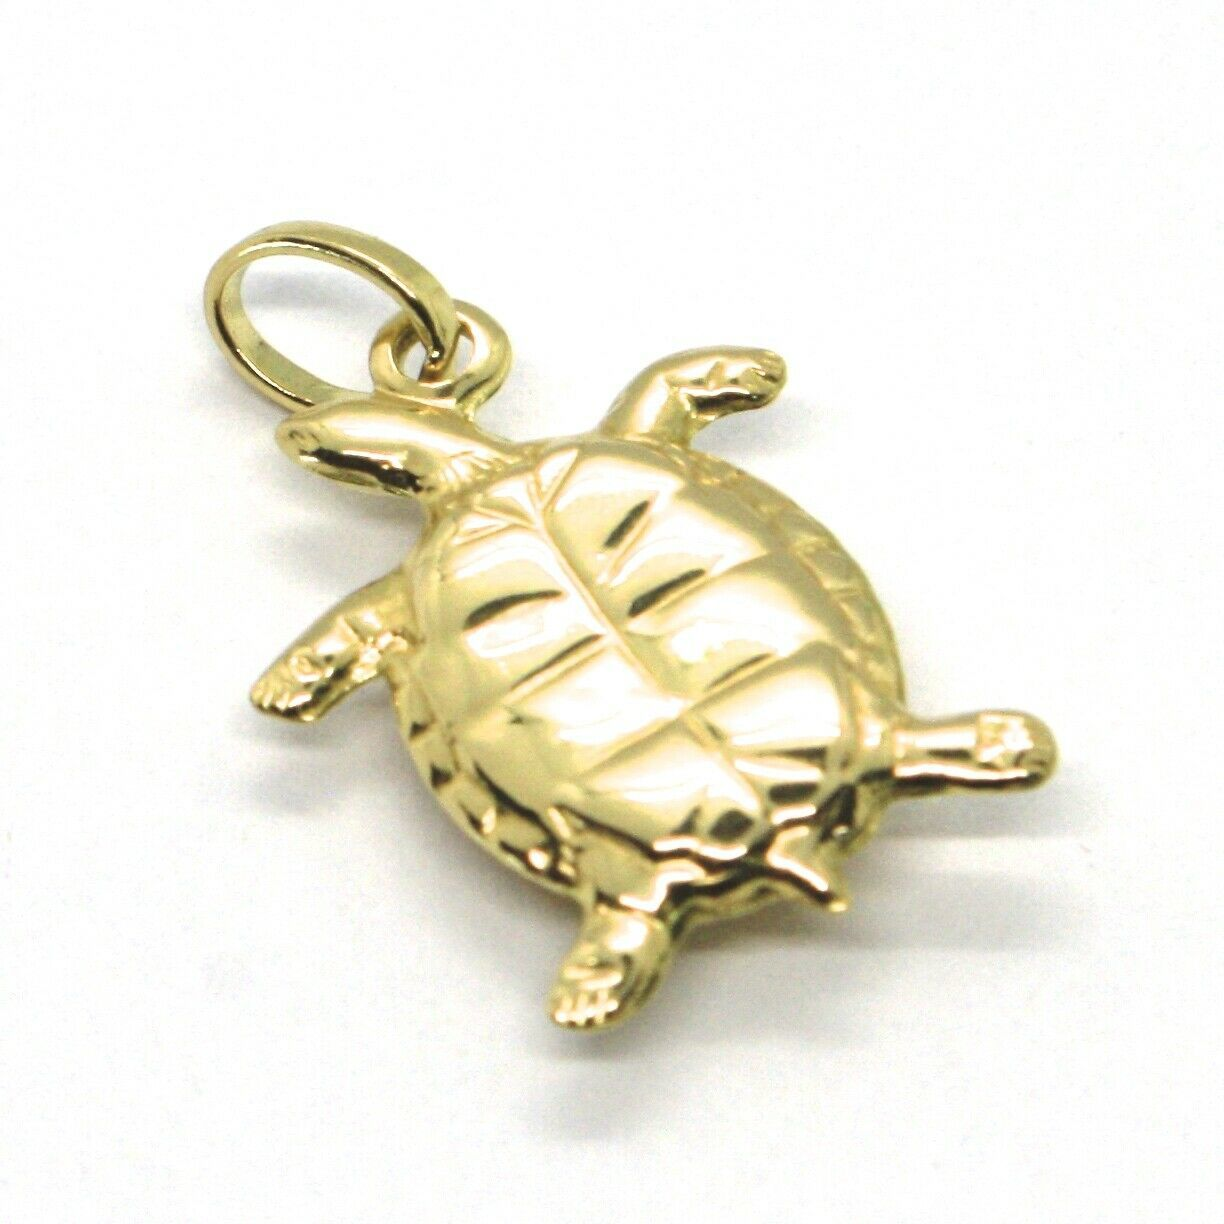 18K YELLOW GOLD PENDANT, ROUNDED TURTLE, SMOOTH, 0.7 INCHES, MADE IN ITALY